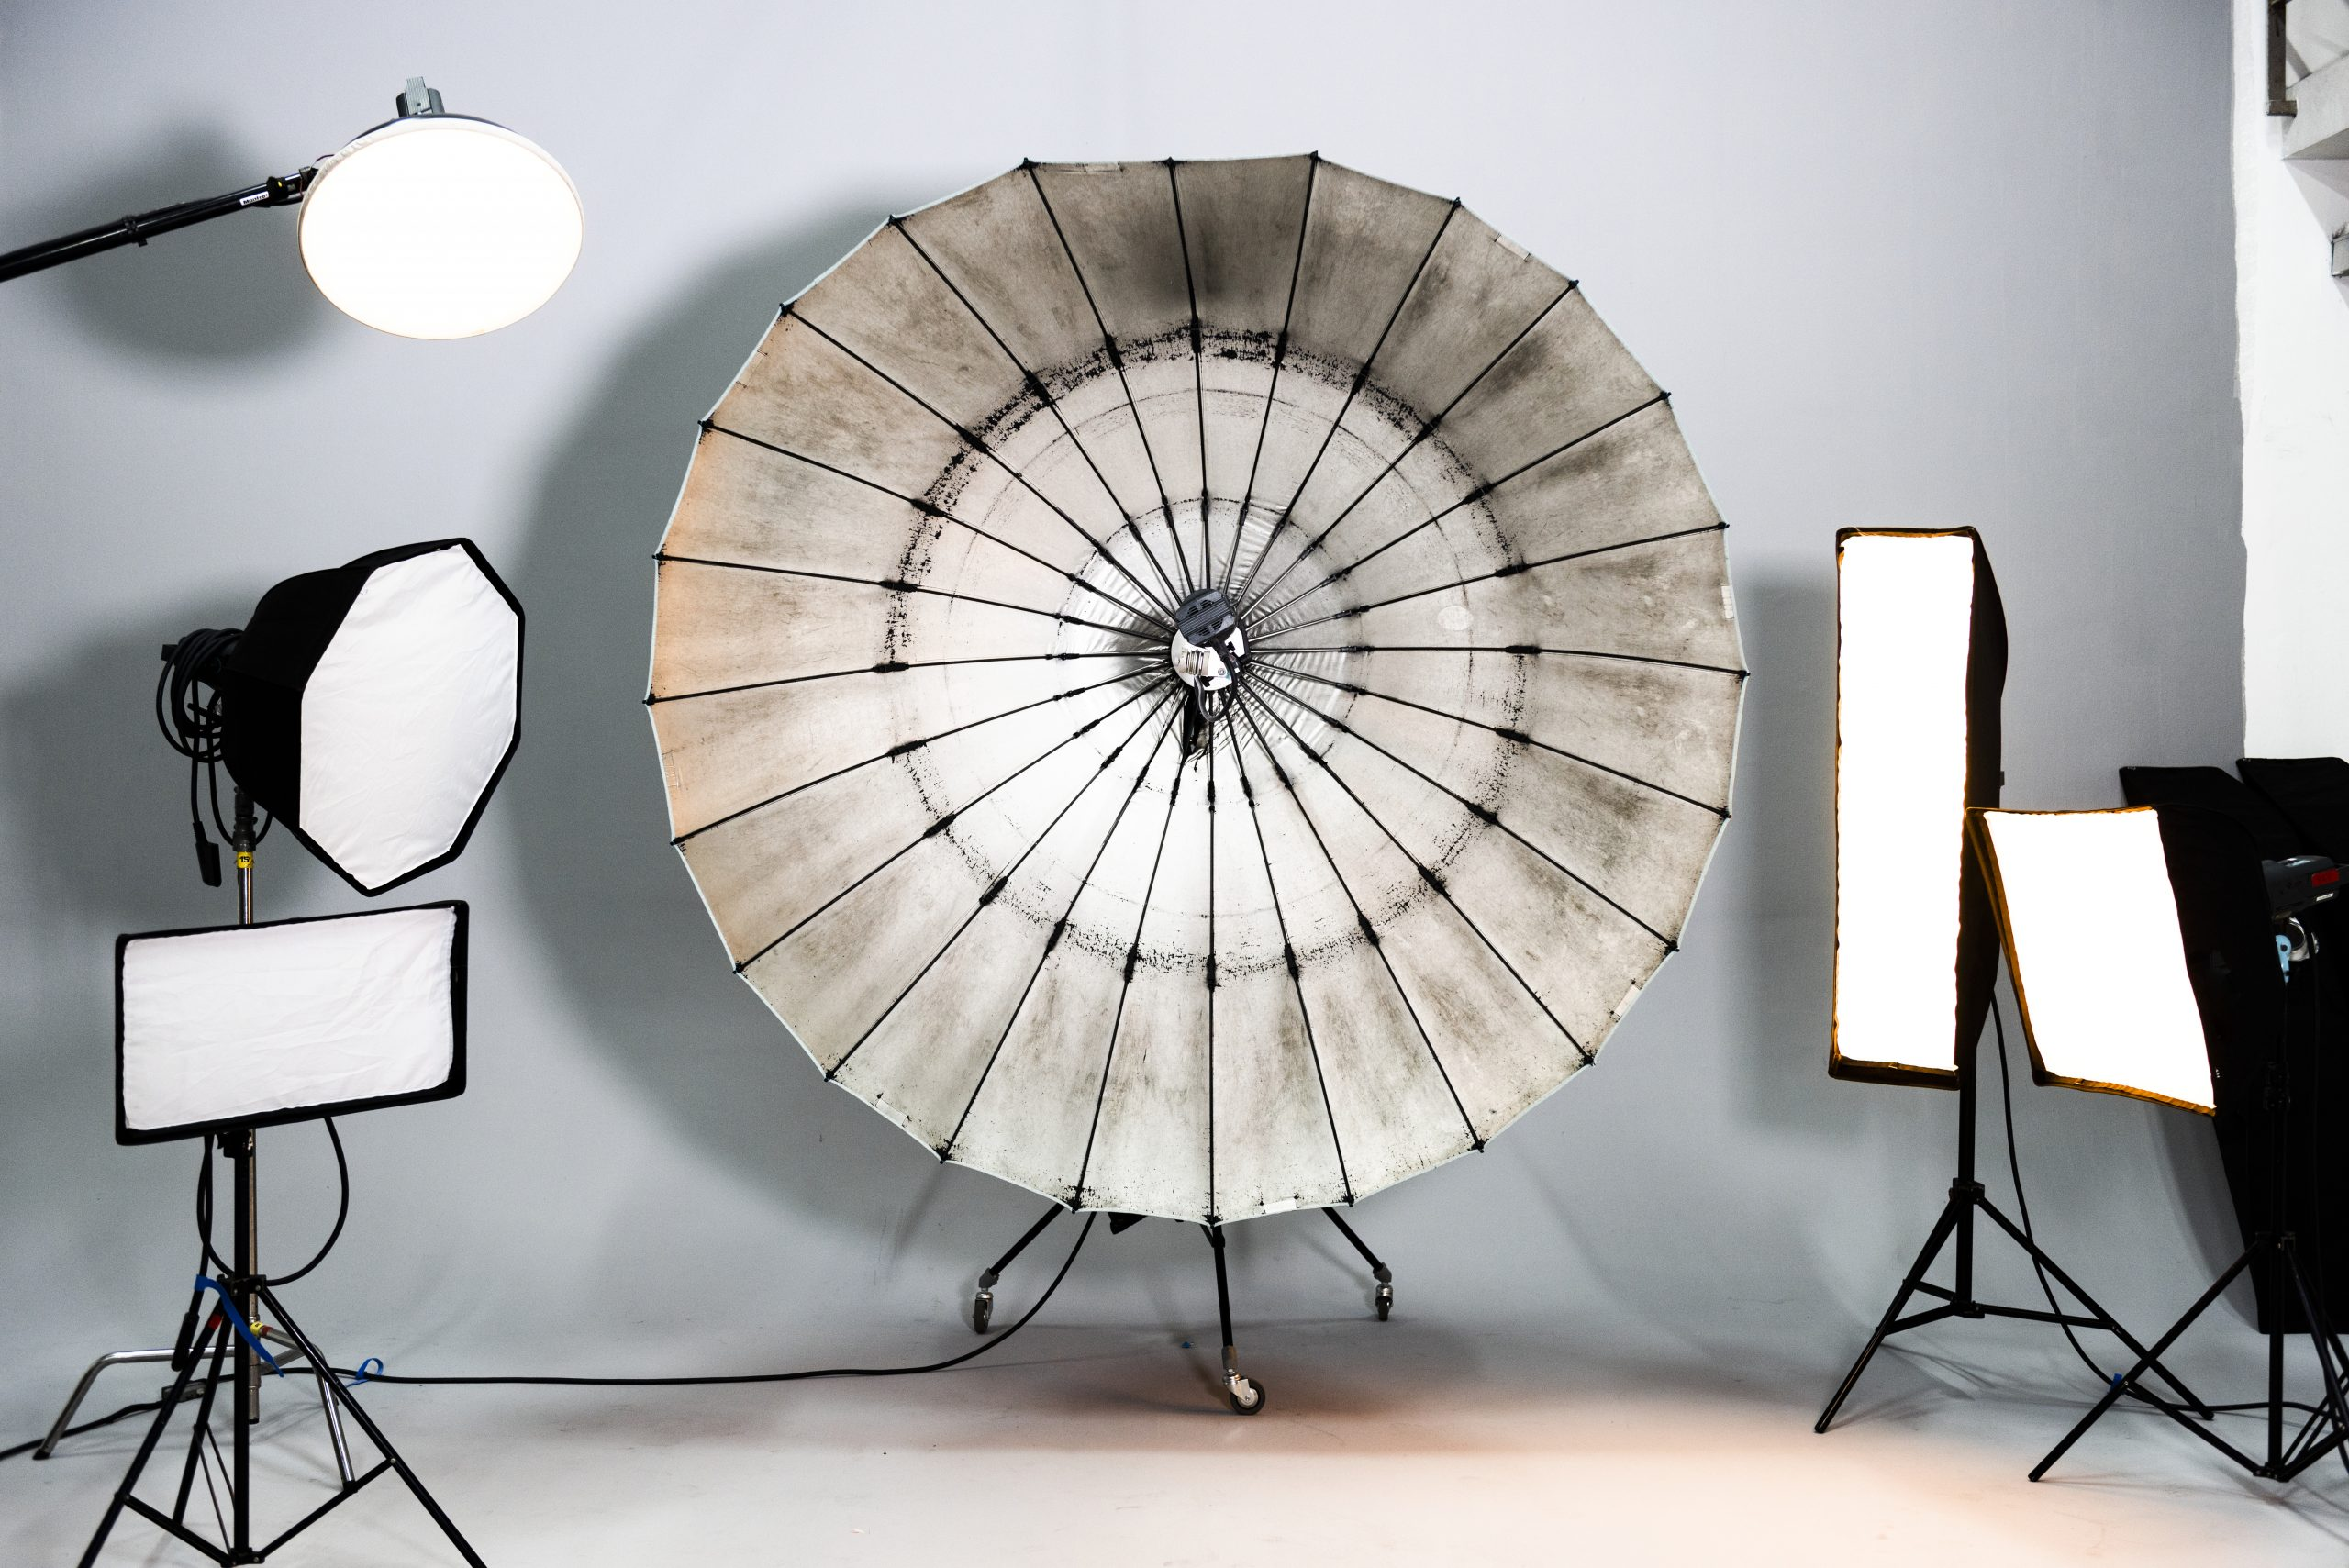 photo studio equipment at home